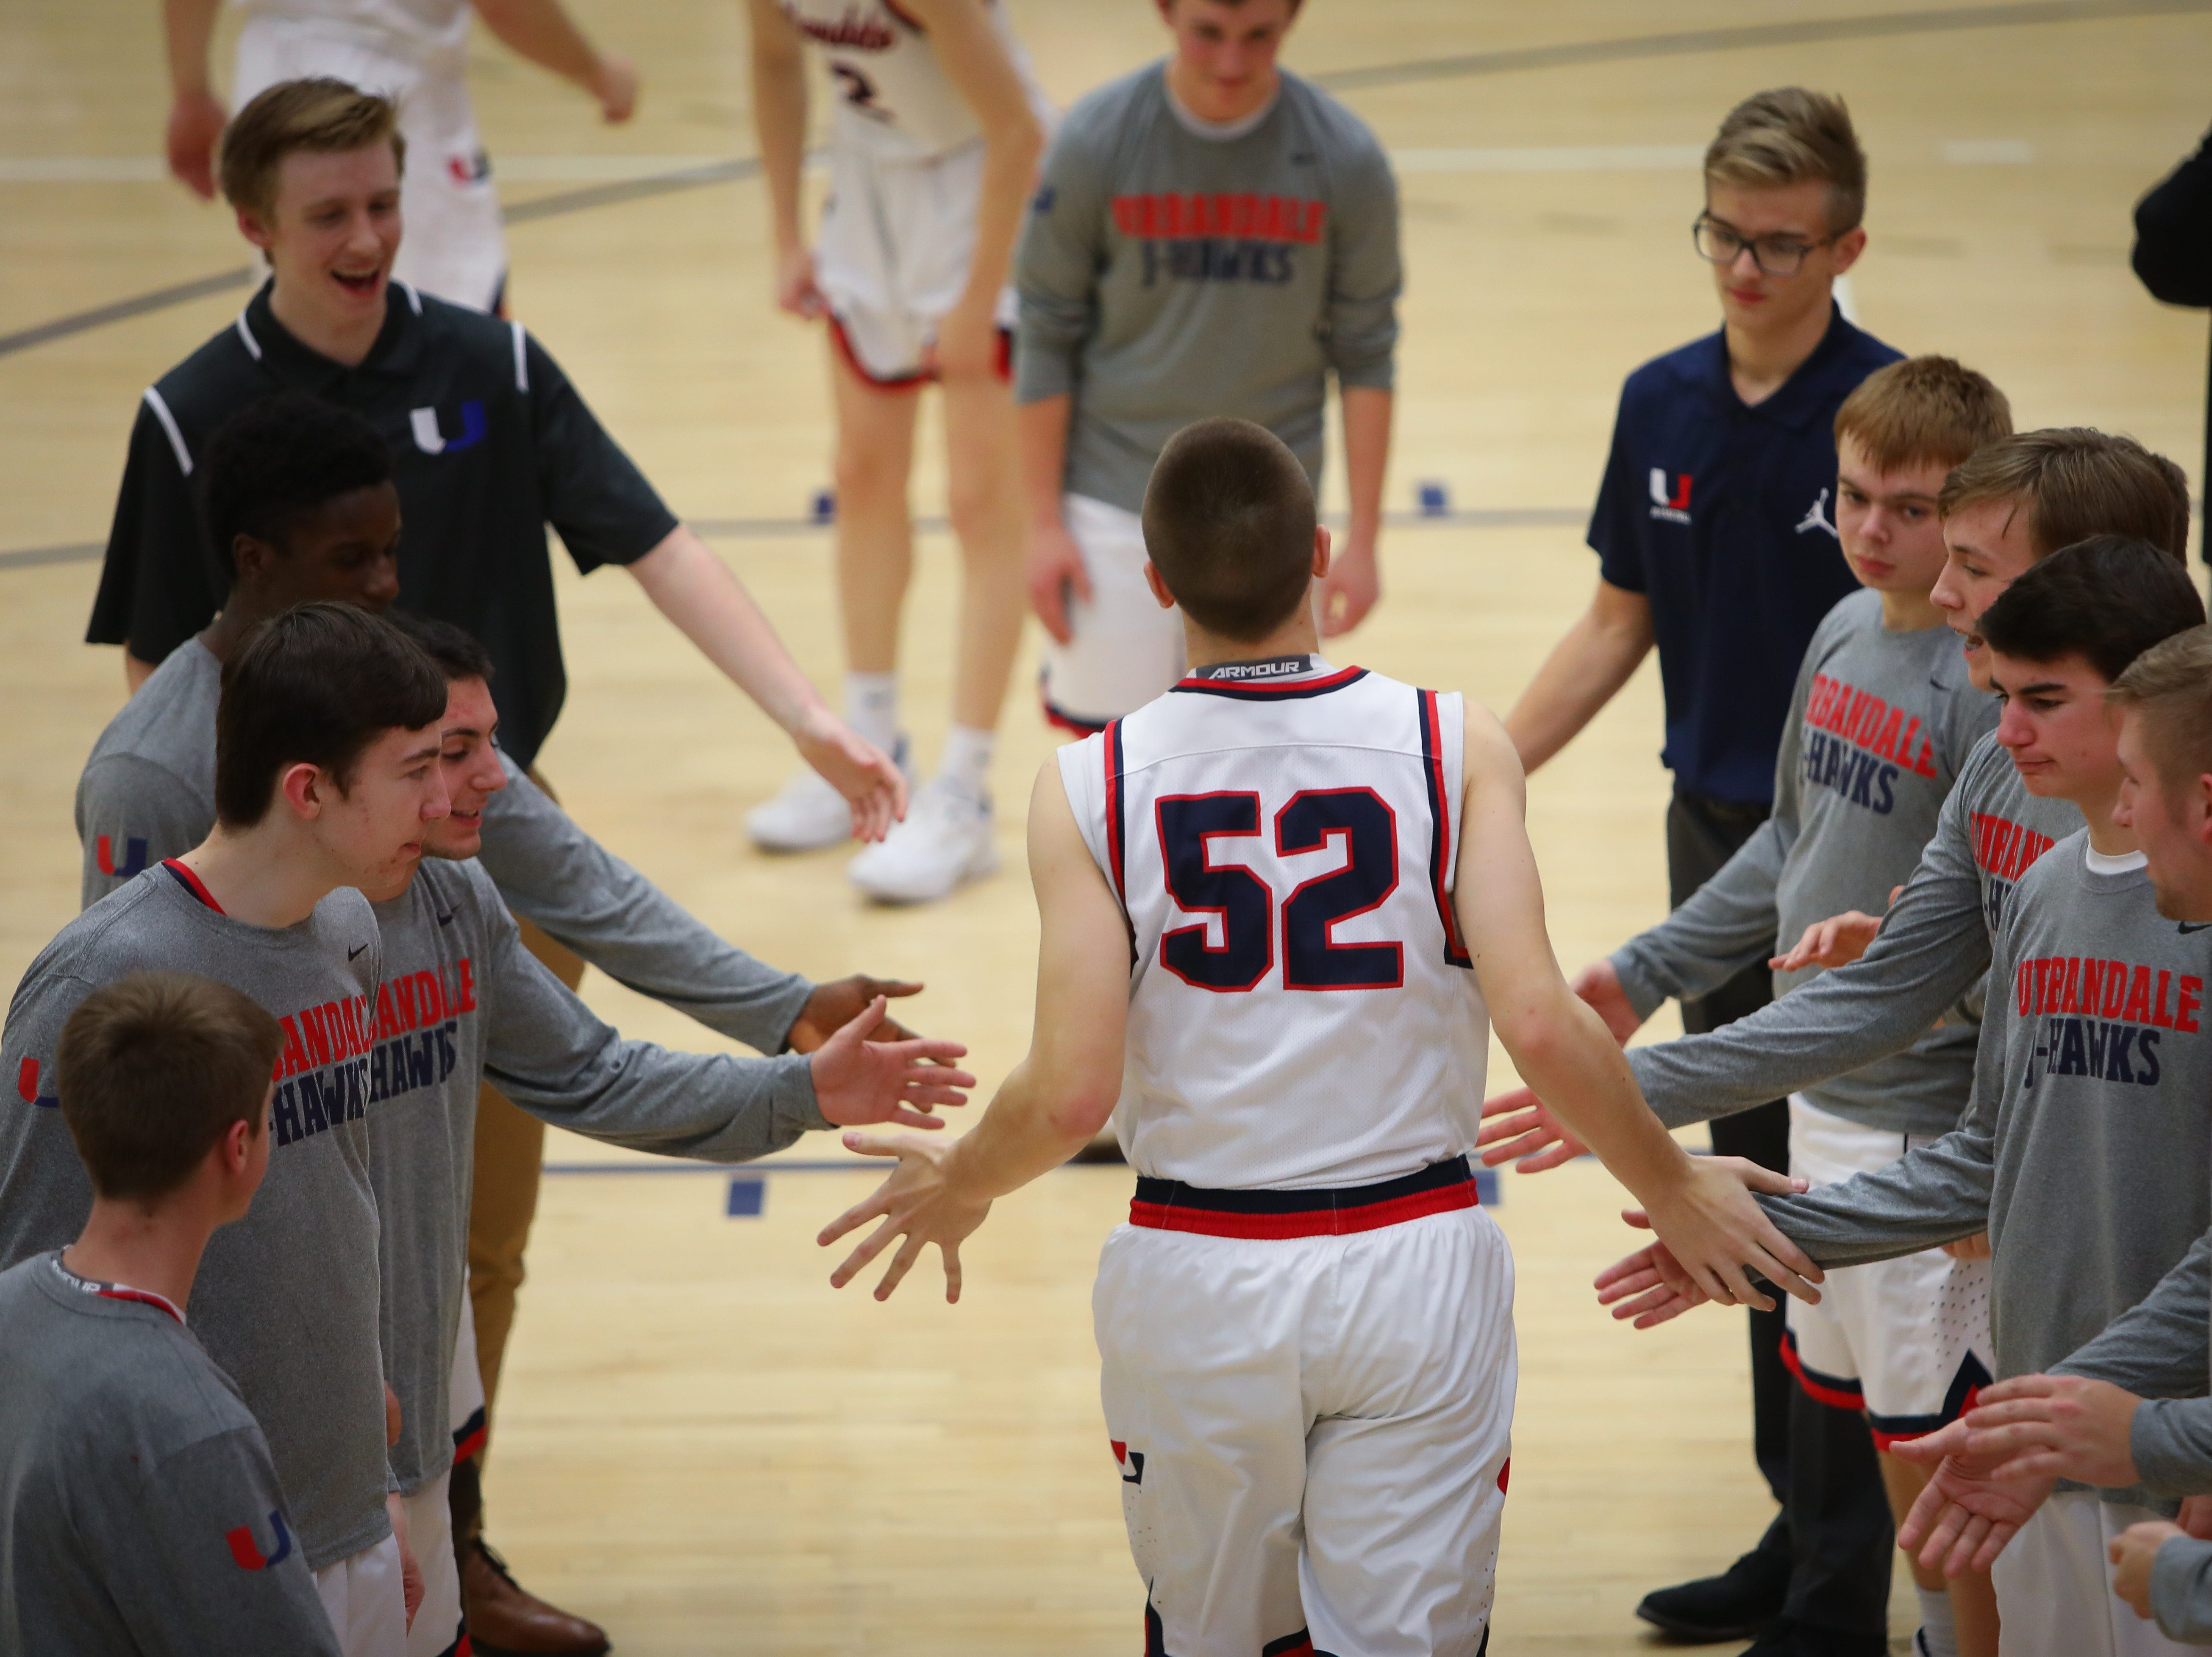 Urbandale junior Cal Watson is introduced before a boys high school basketball game between the Johnston Dragons and the Urbandale J-Hawks at Urbandale High School on Dec. 18, 2018 in Urbandale, Iowa.